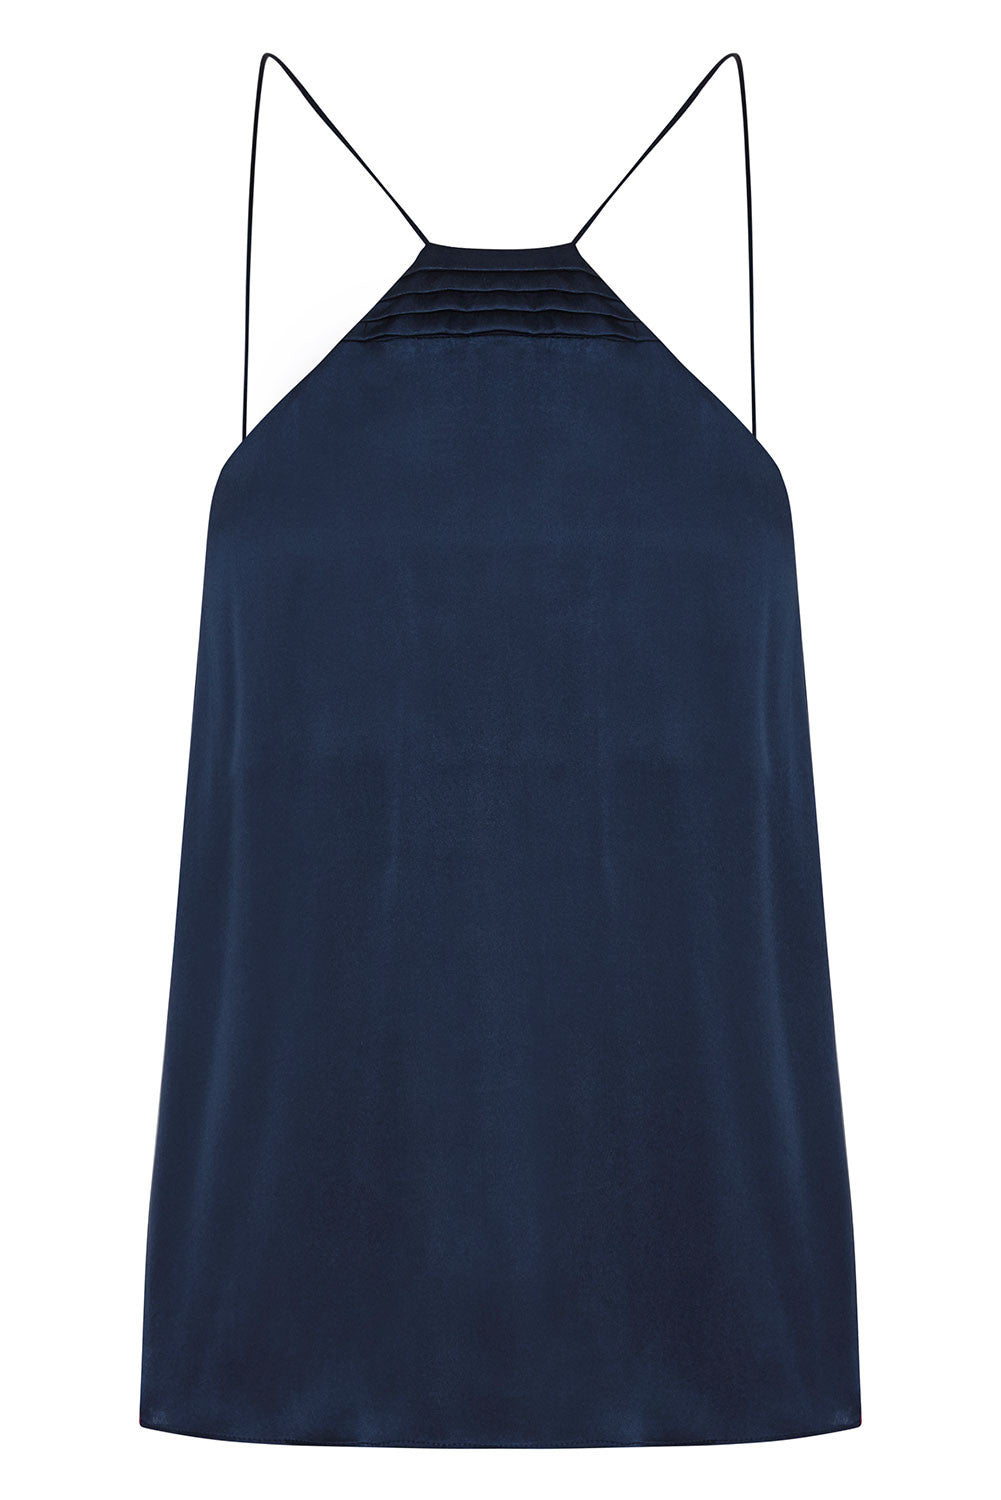 THE 2-in-1 CAMISOLE - MIDNIGHT BLUE